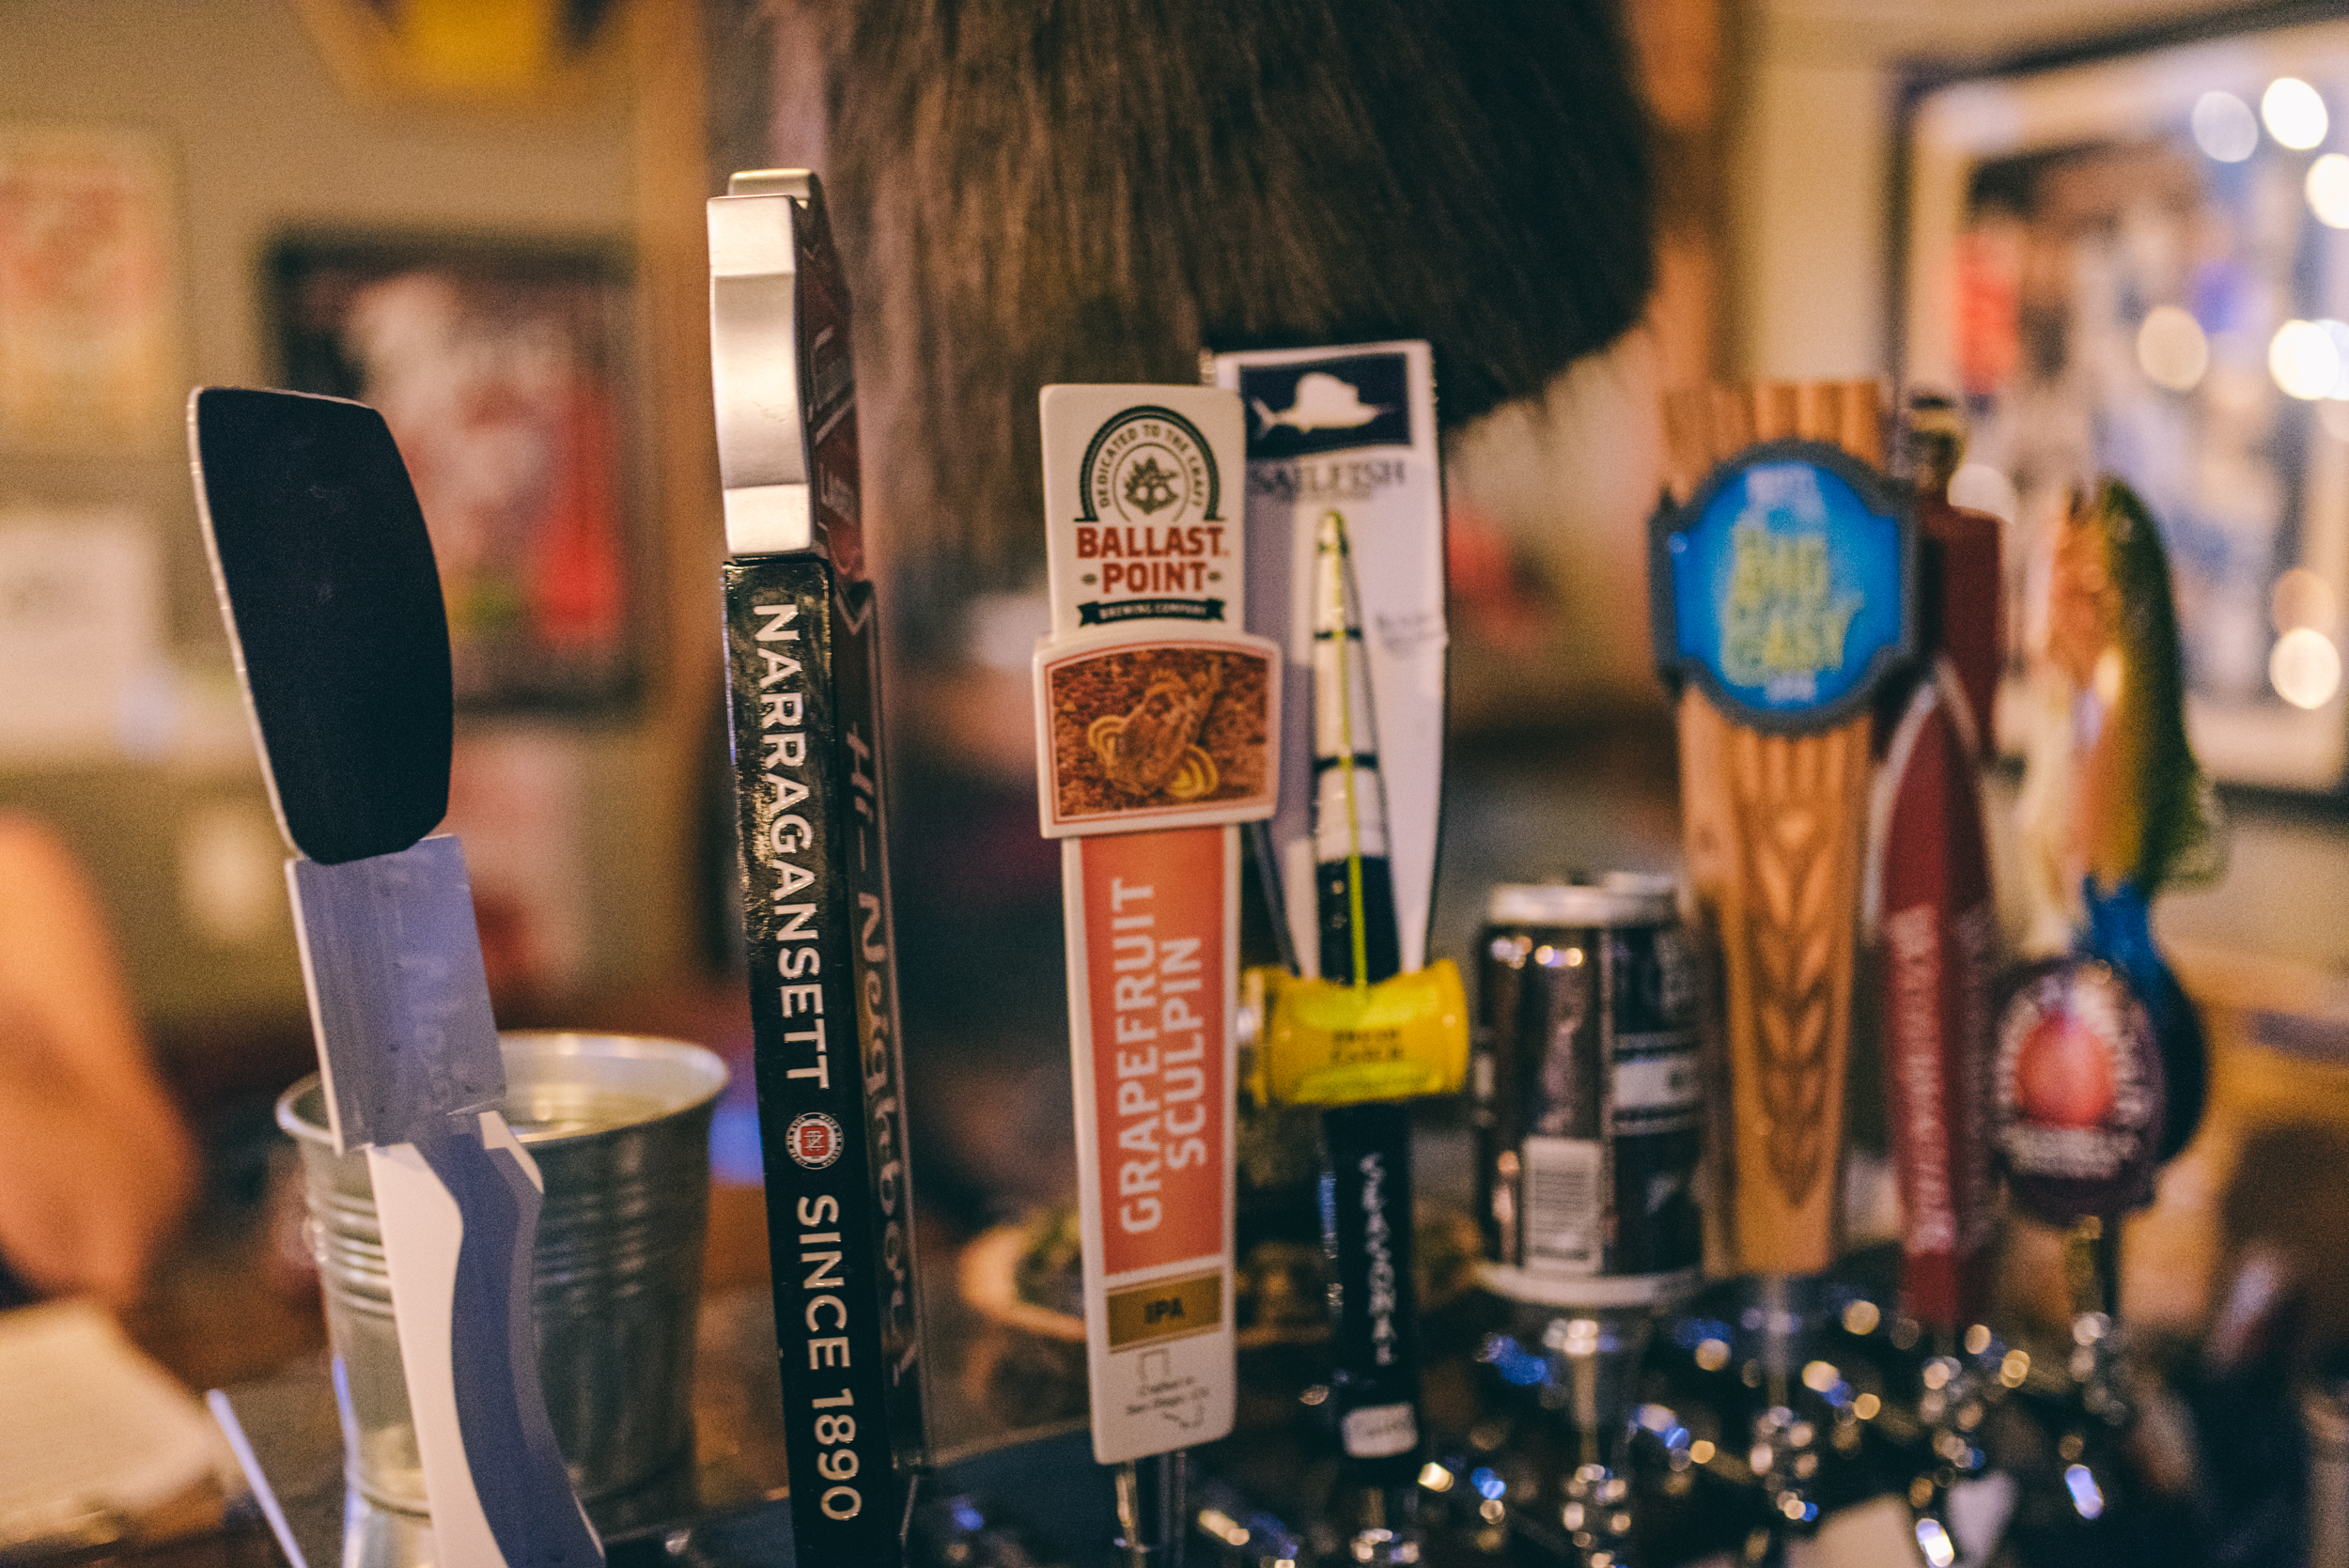 Beer Taps at Village Idiot in Cocoa Village